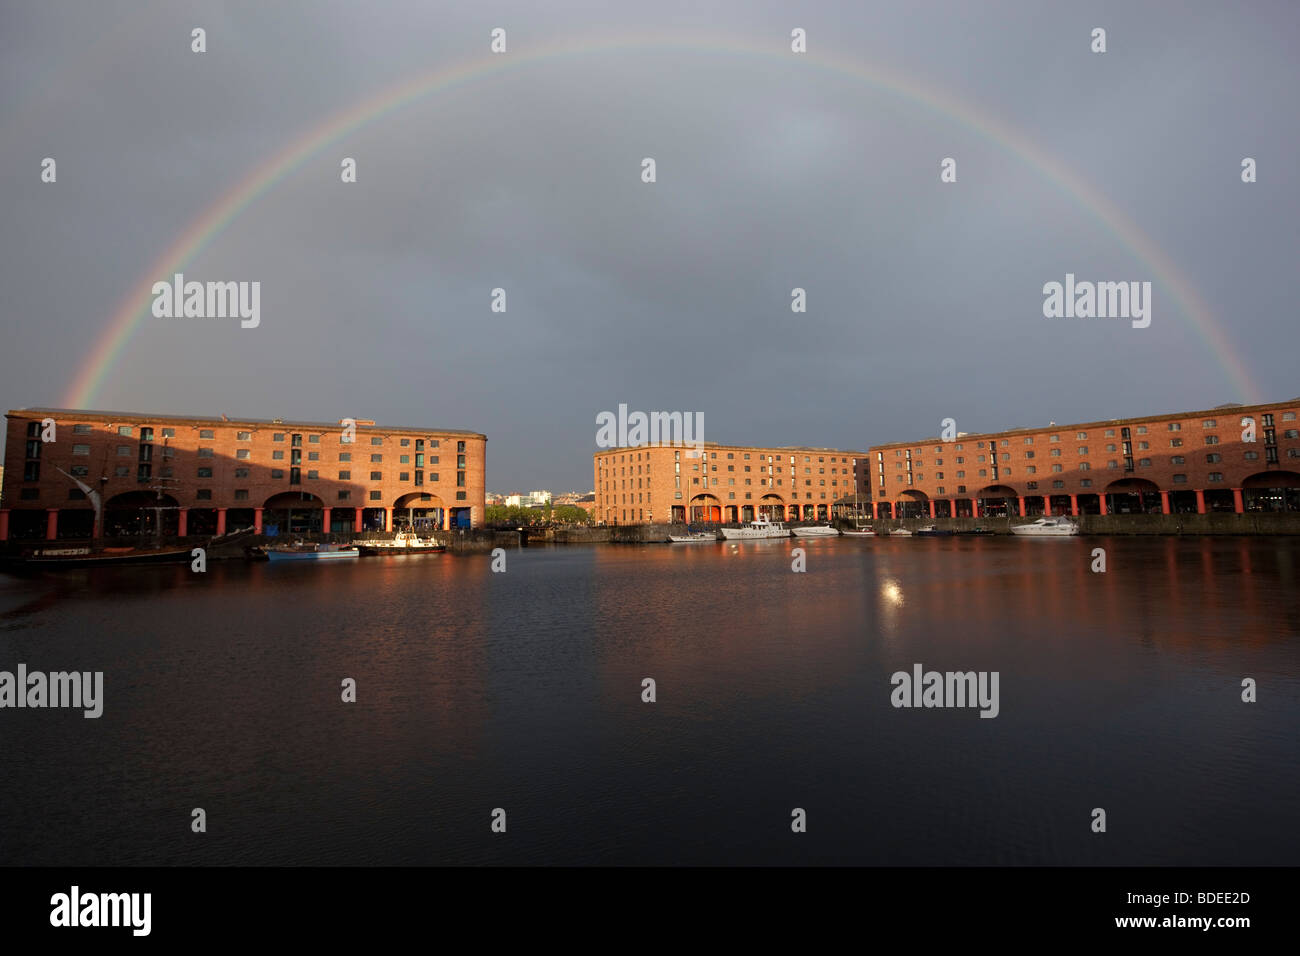 A full 180 degree rainbow over the Albert Dock, Liverpool, England - Stock Image